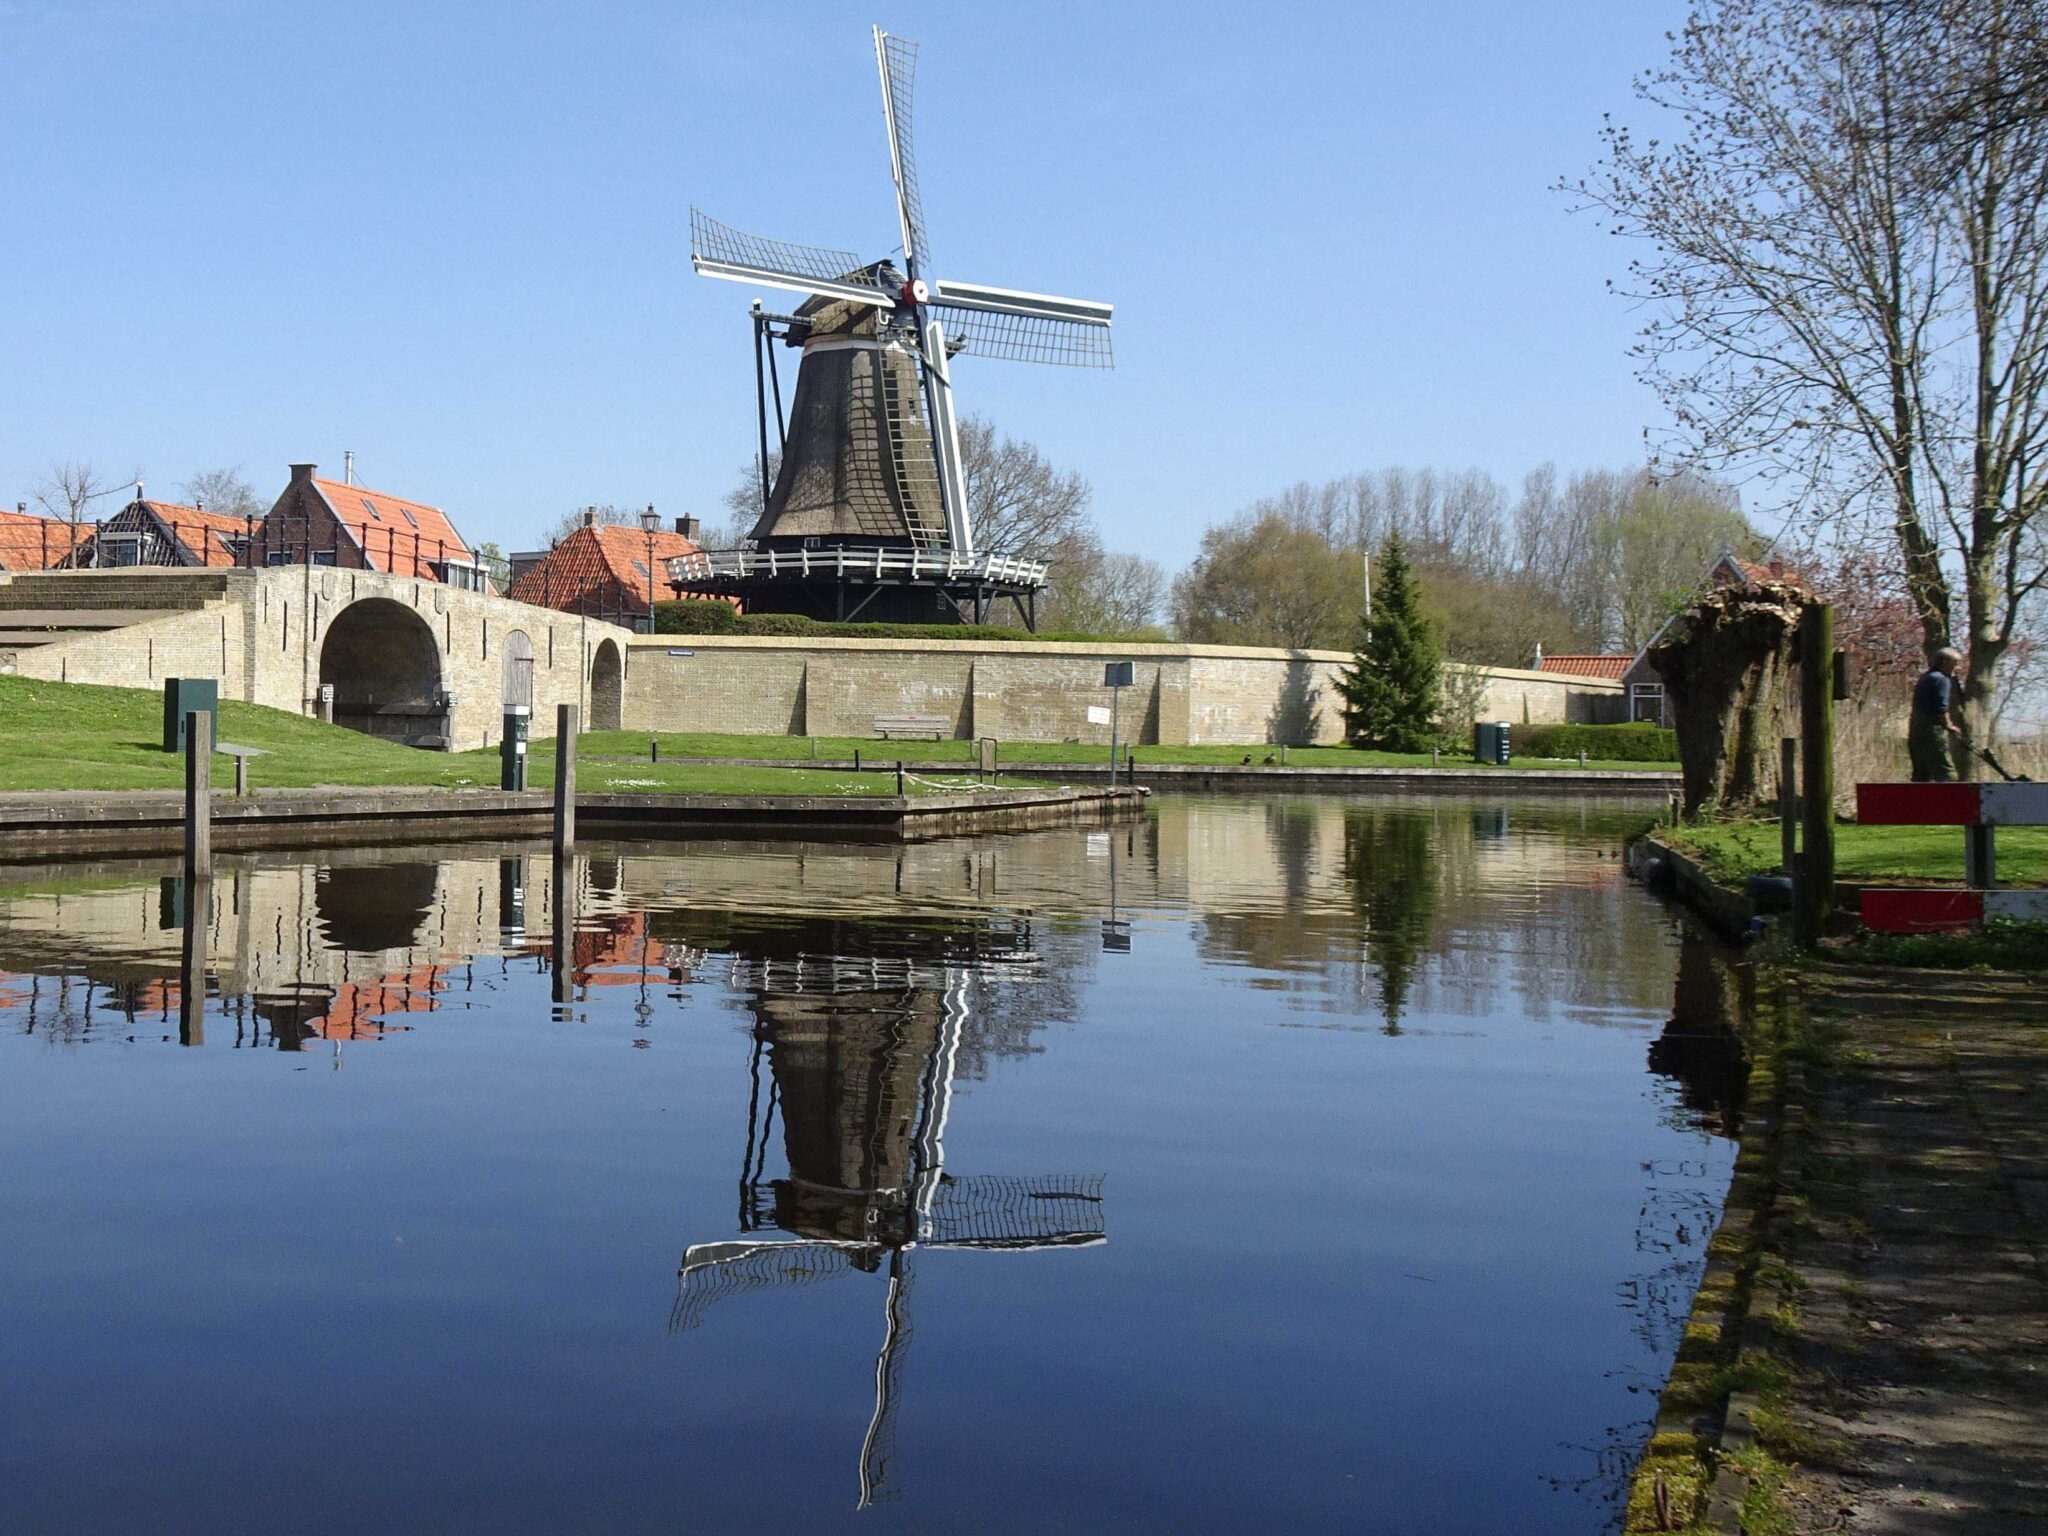 Molen van Sloten scaled